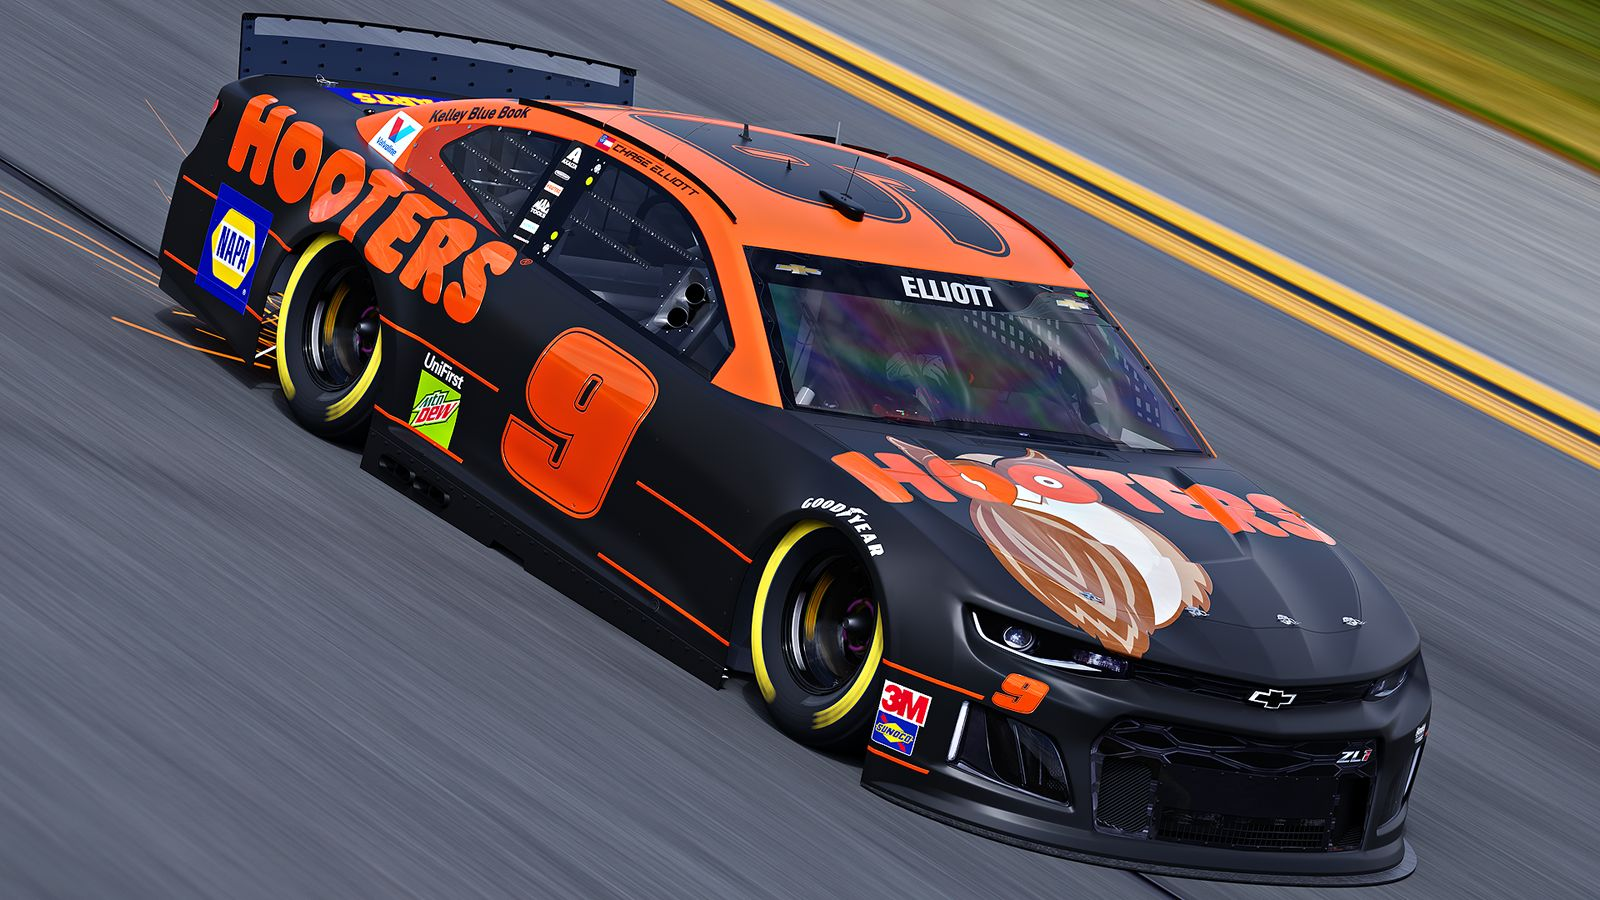 Hooters Invites Race Fans To Root For Nascar Driver Chase Elliott With Special Race Day Offers Restaurantnews Com